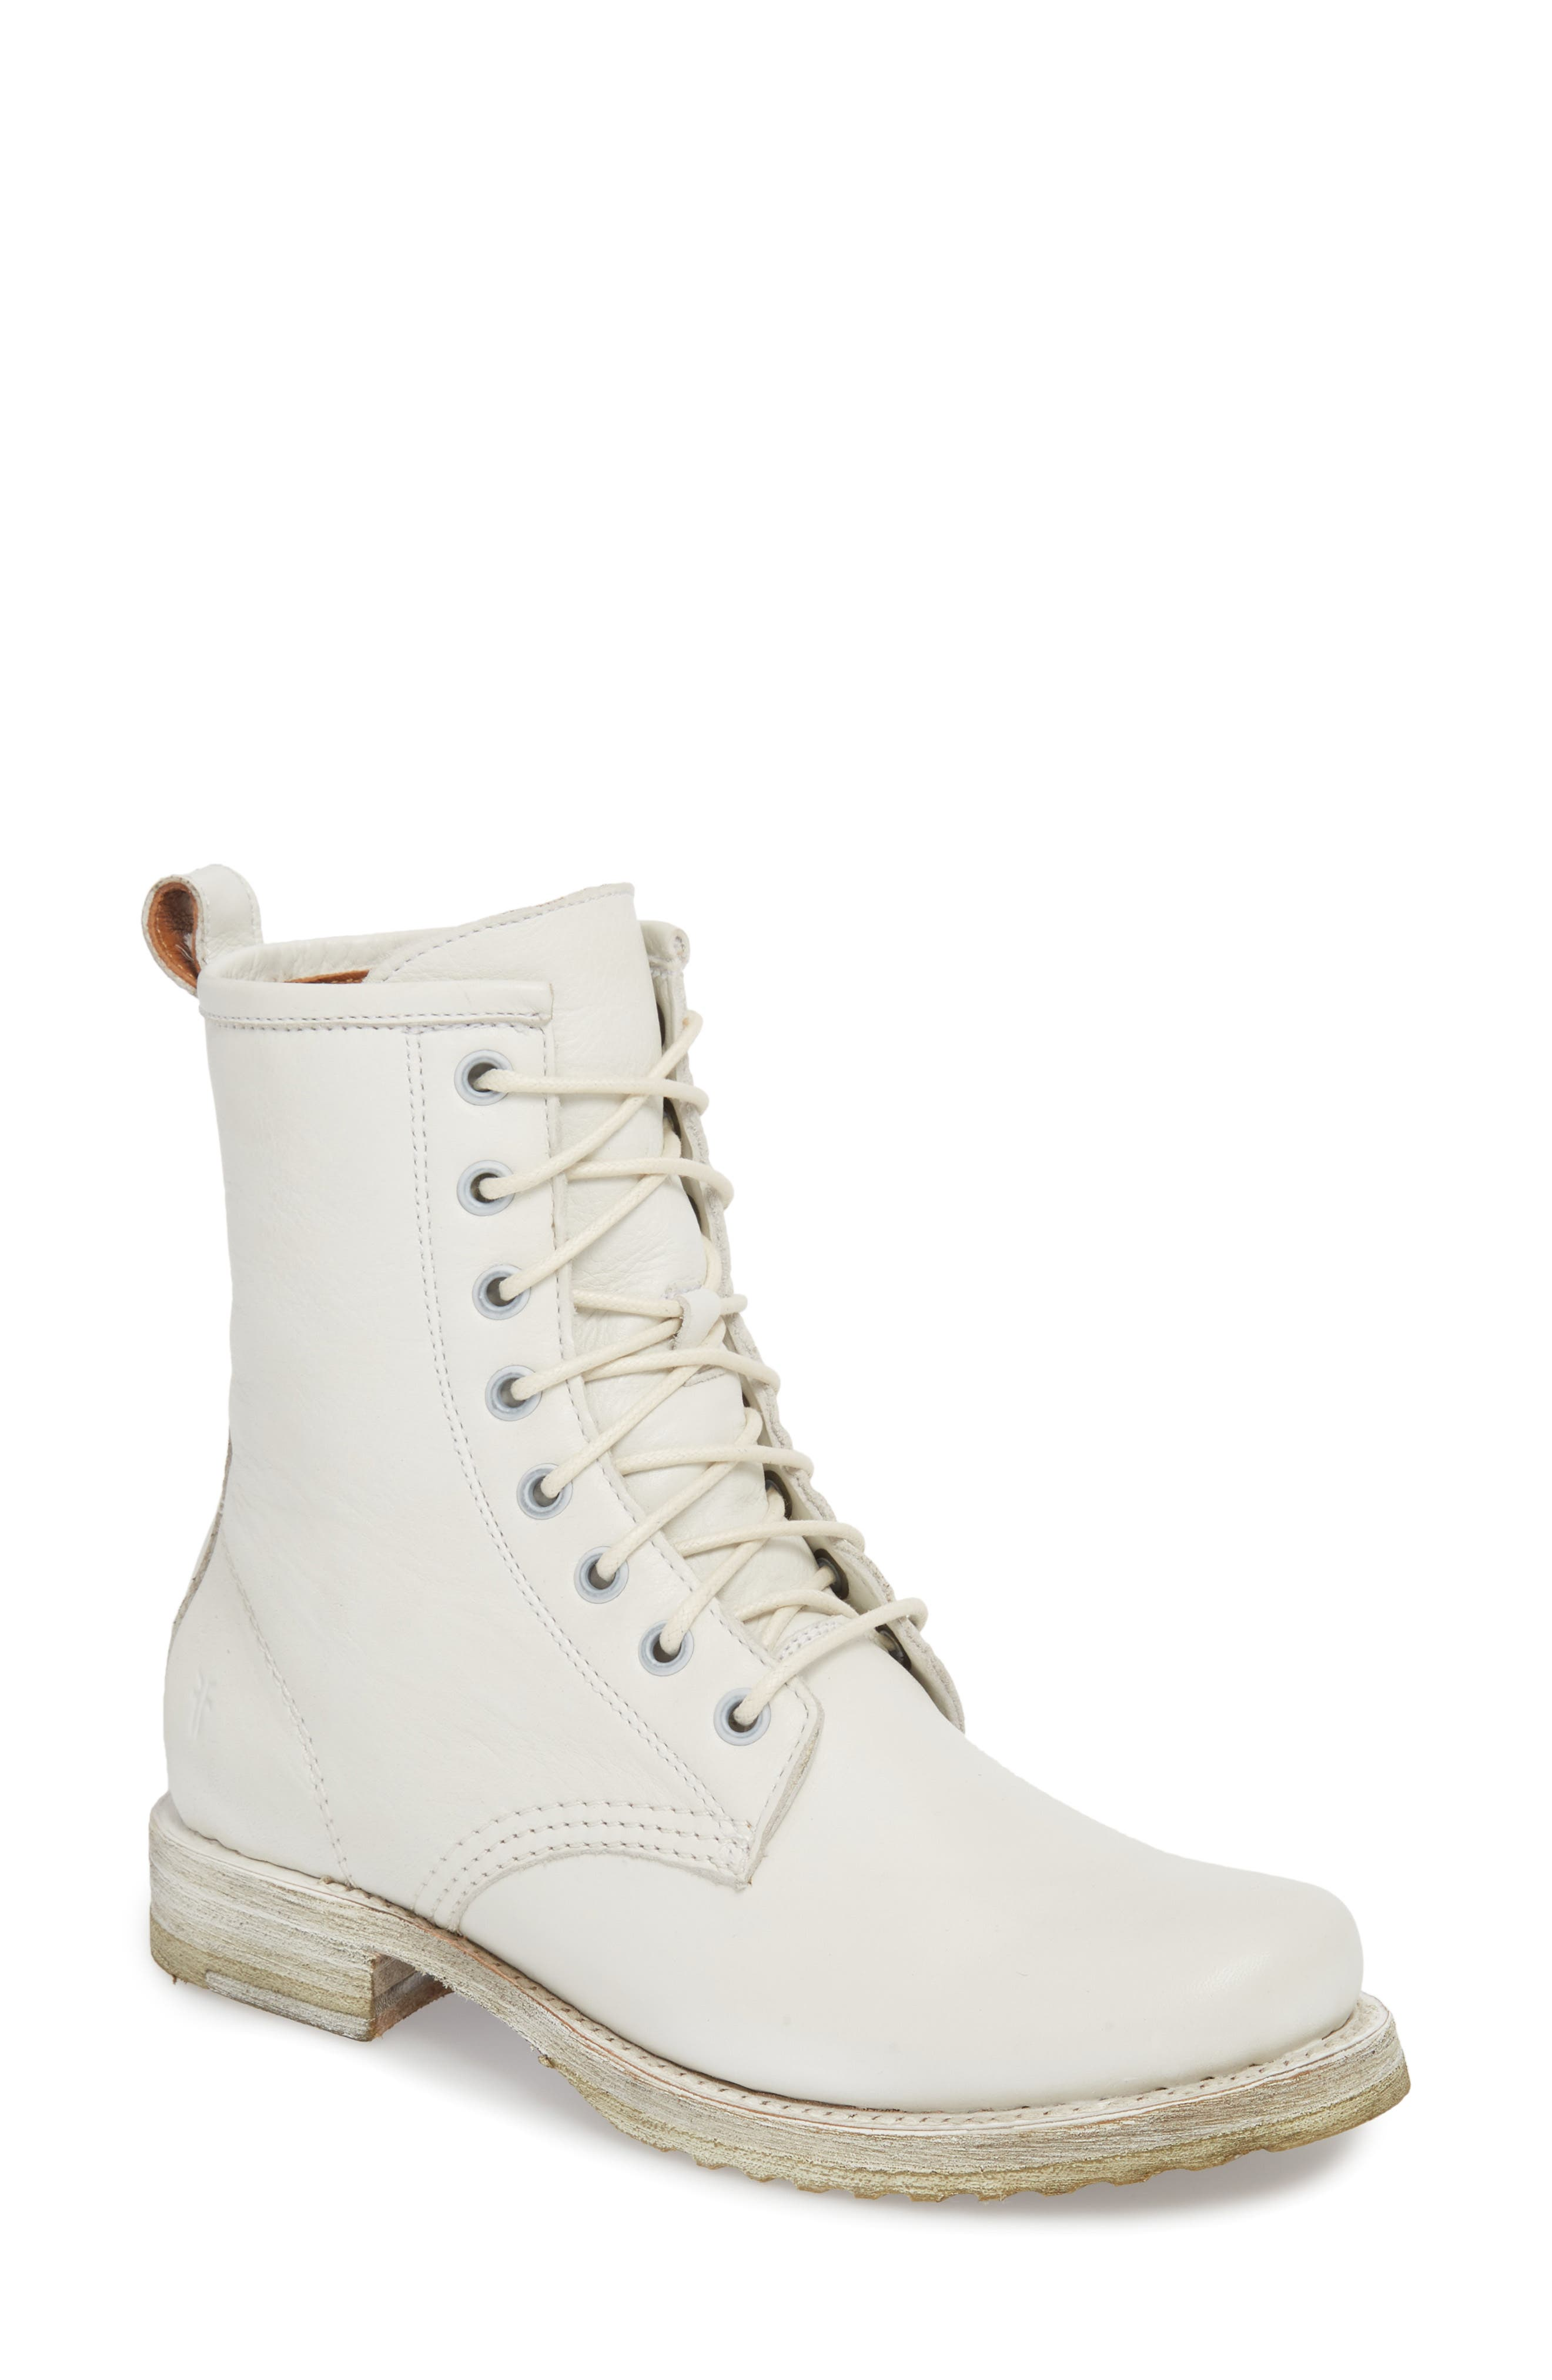 FRYE, Veronica Combat Boot, Main thumbnail 1, color, WHITE LEATHER